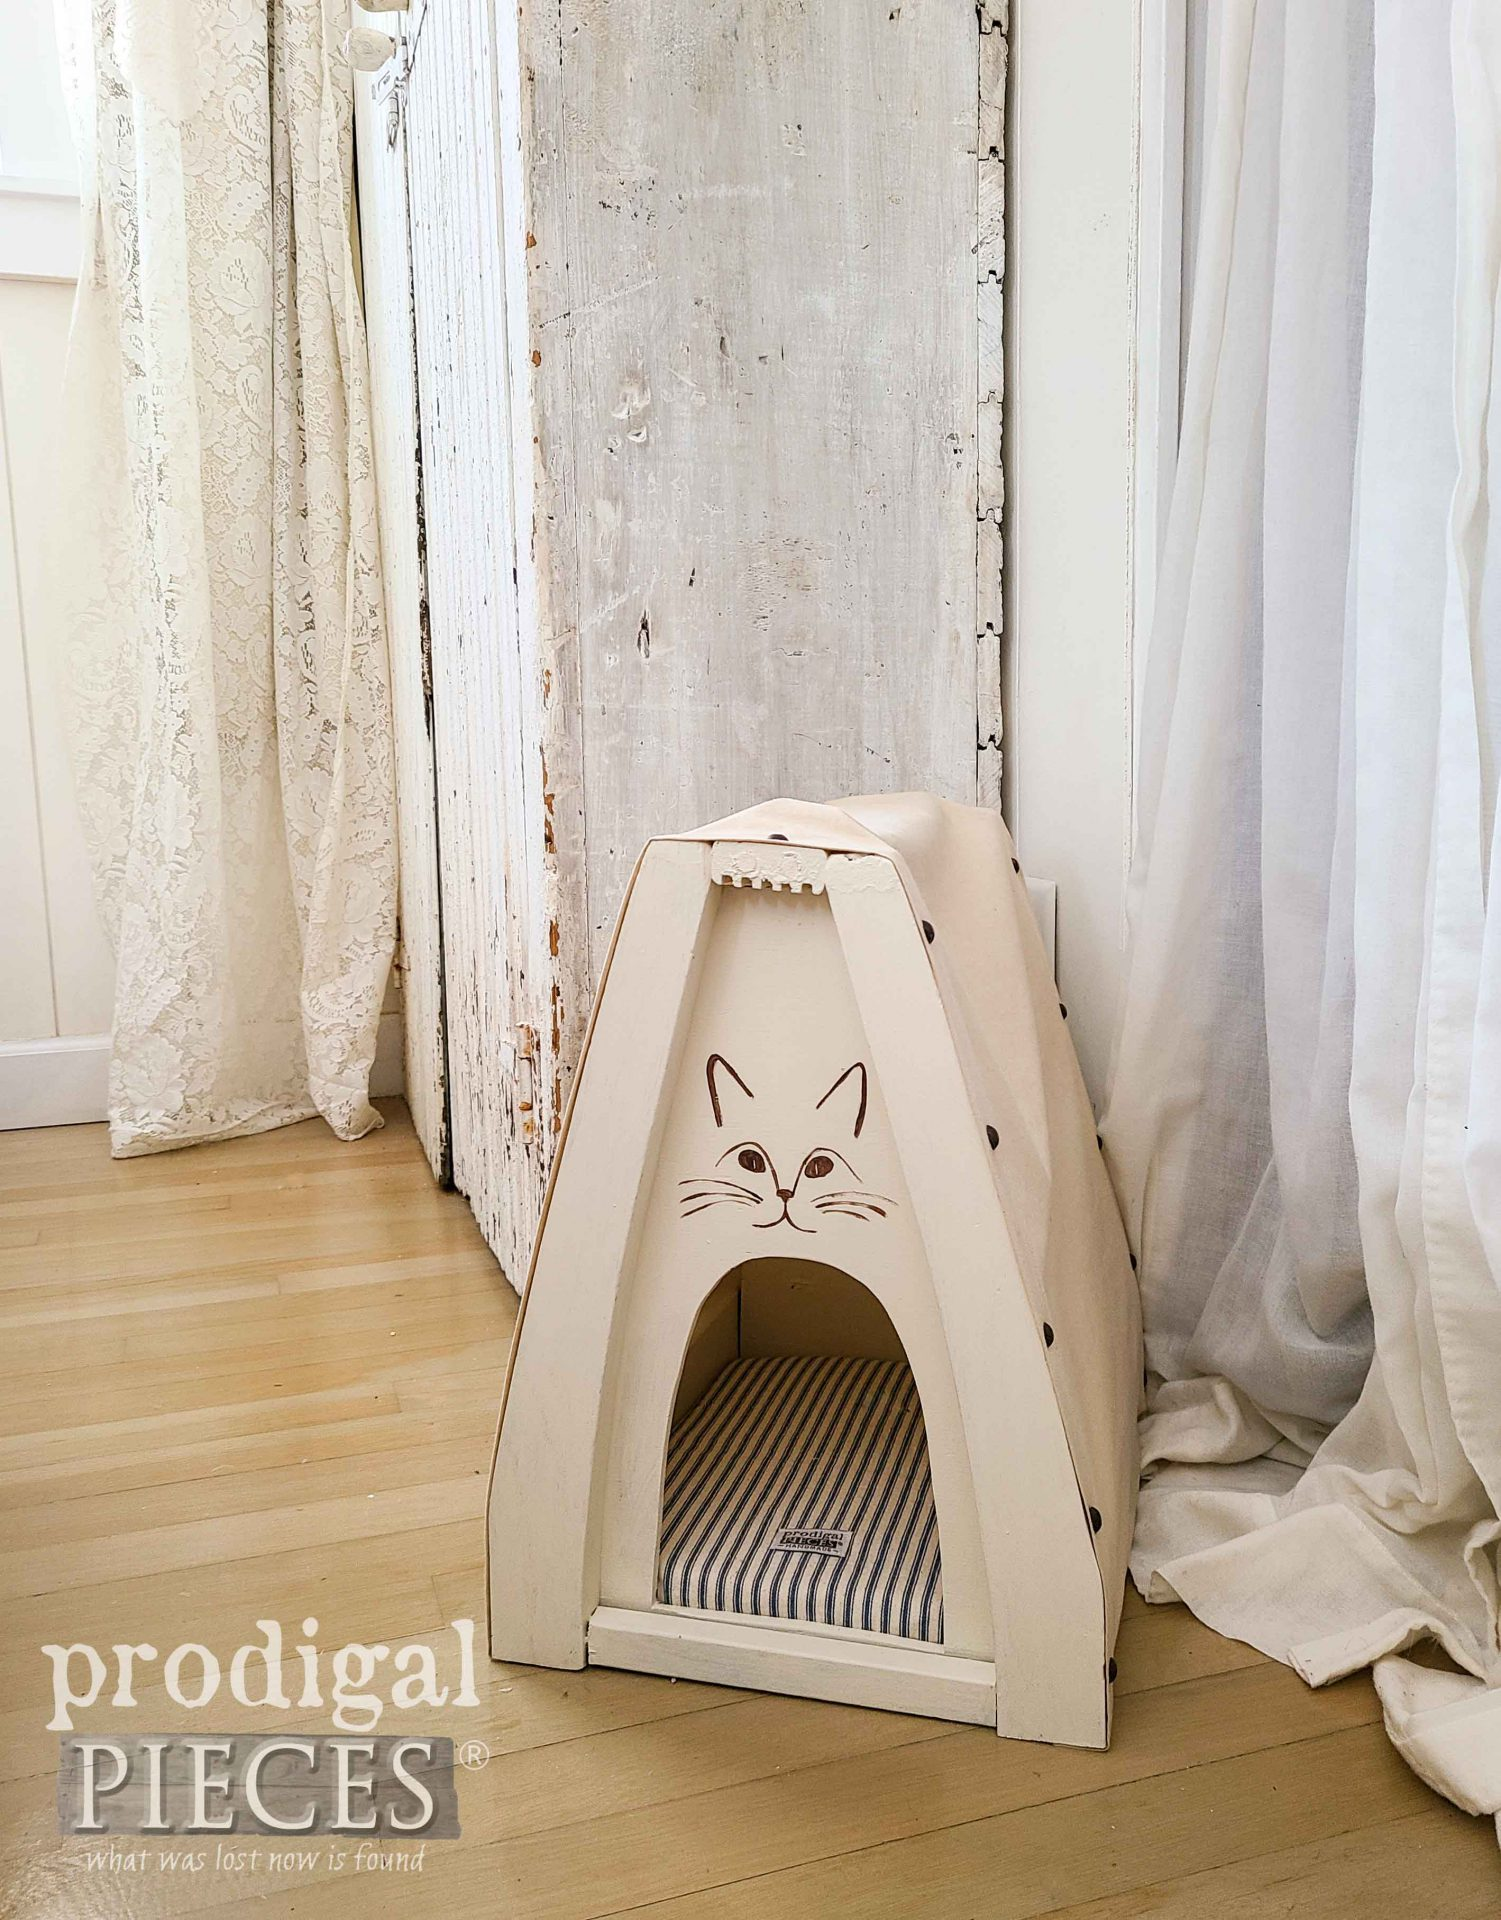 DIY Cat Bed Cave from Upcycled Chair Parts by Larissa of Prodigal Pieces | prodigalpieces.com #prodigalpieces #cats #pets #diy #home